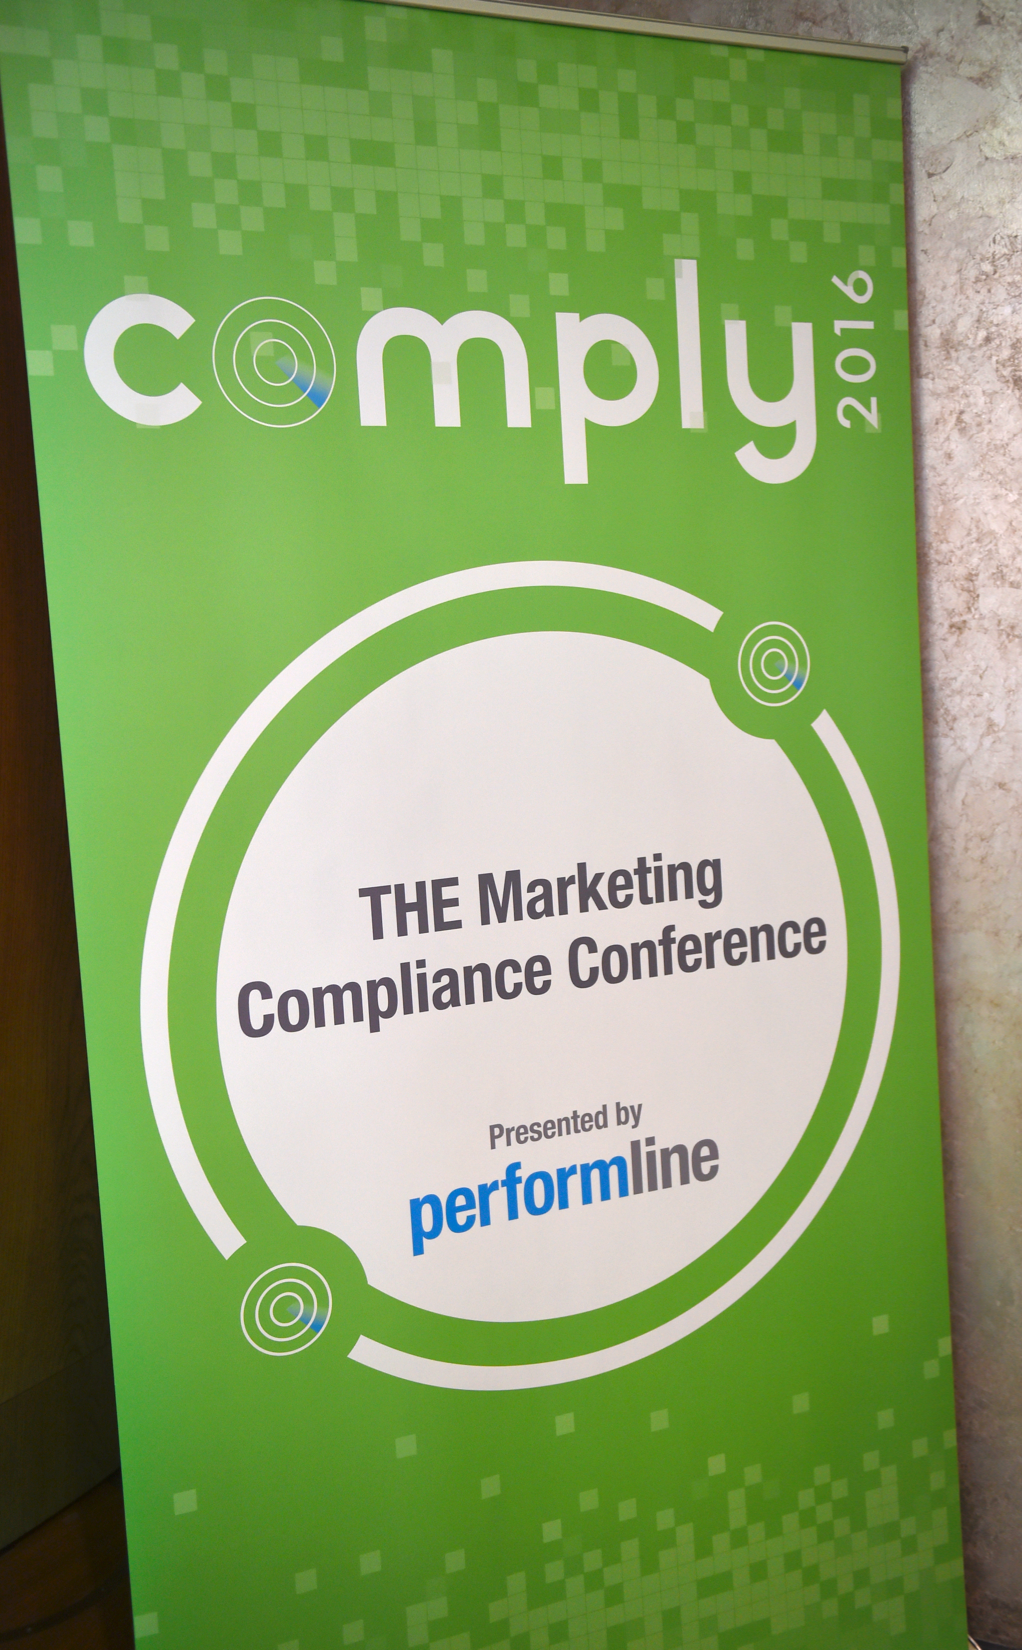 COMPLY2016 Rewind: #ThinkBigger